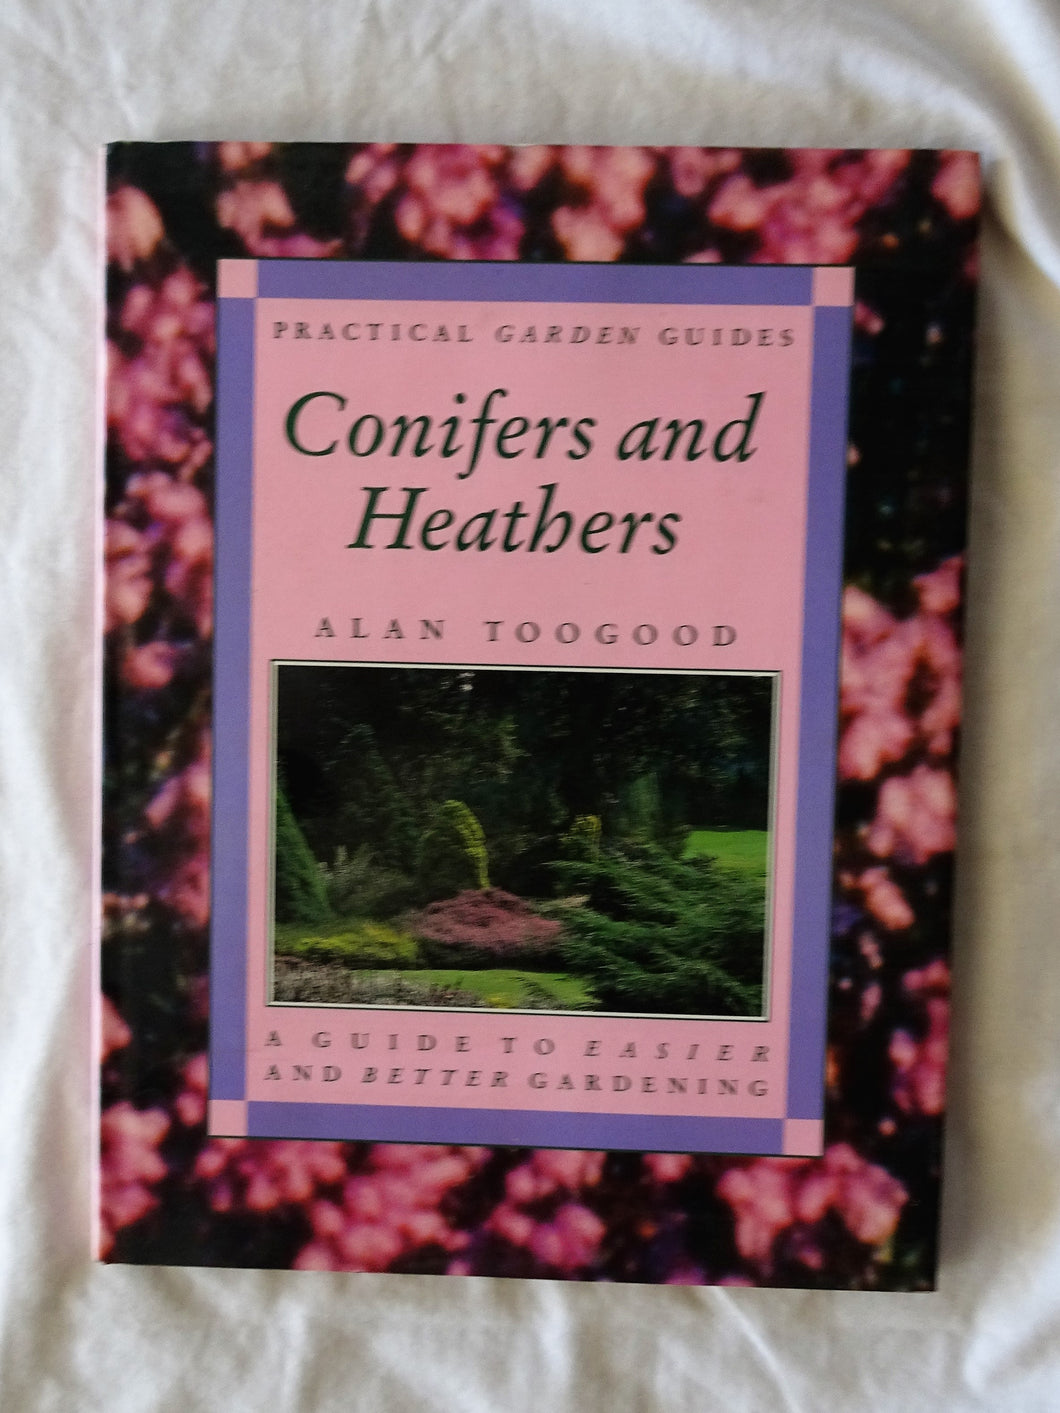 Conifers and Heathers by Alan Toogood